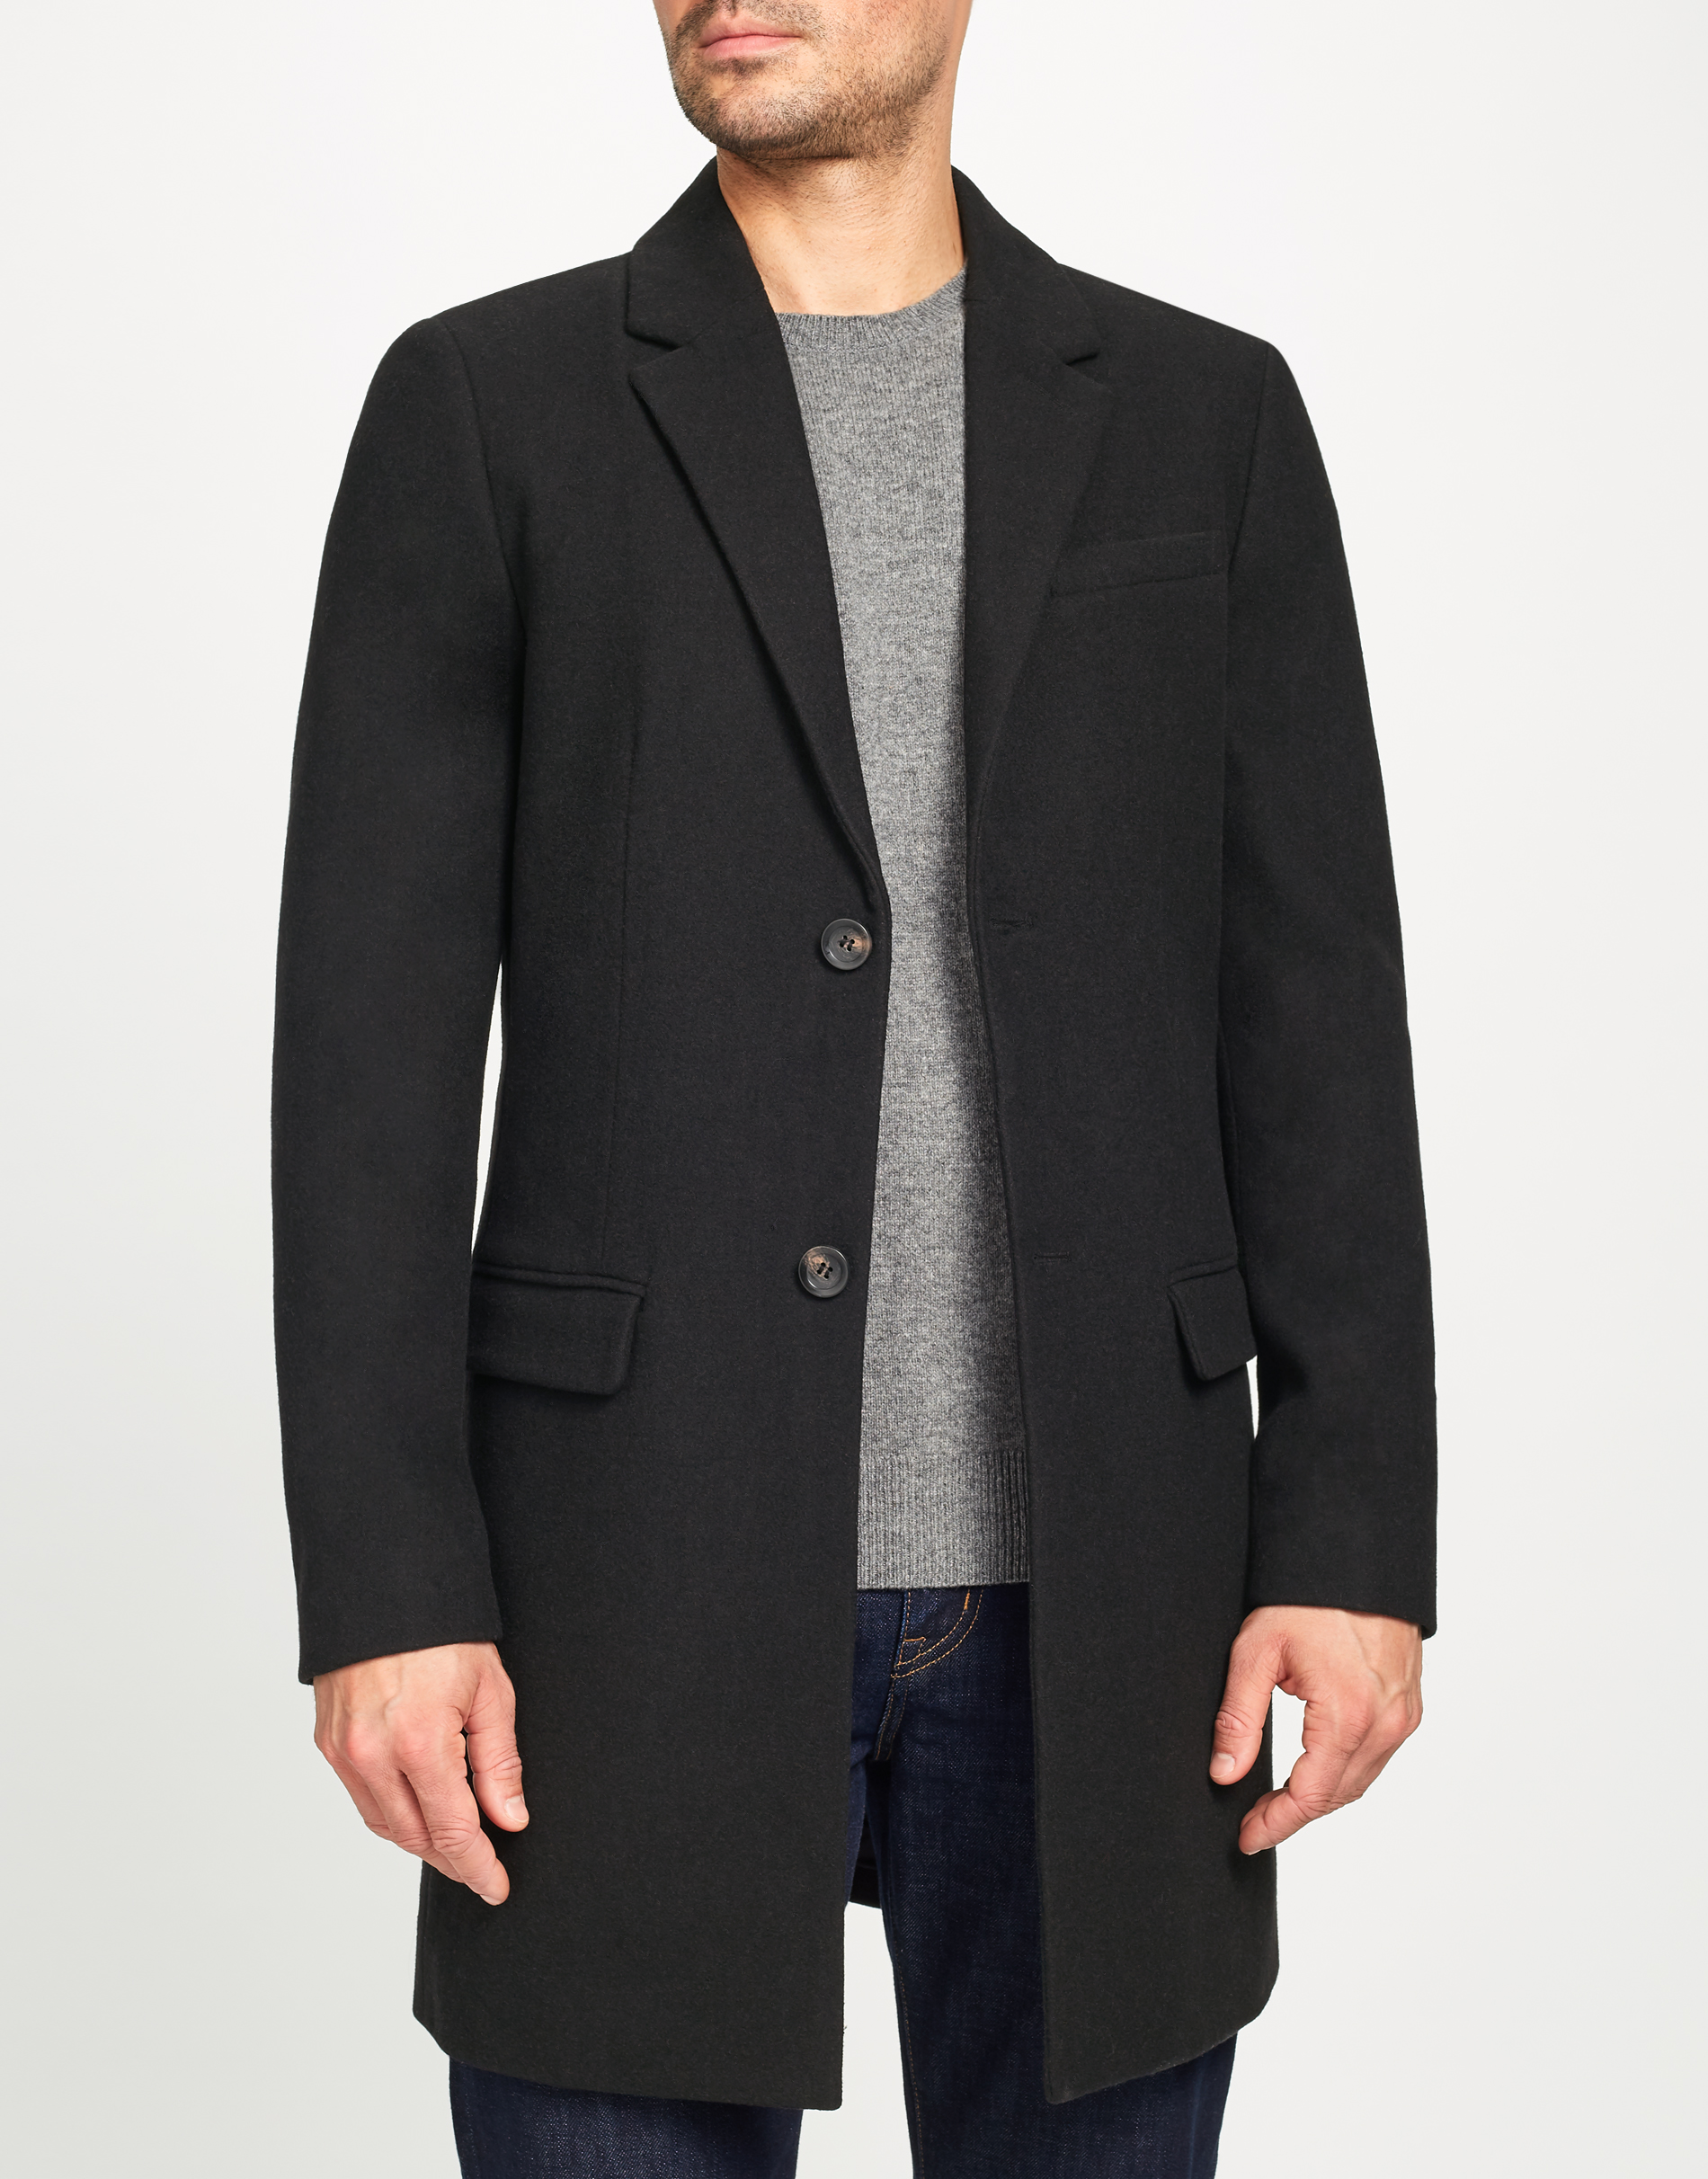 MVP Greenwood Single Breasted Wool Blend Coat - Black